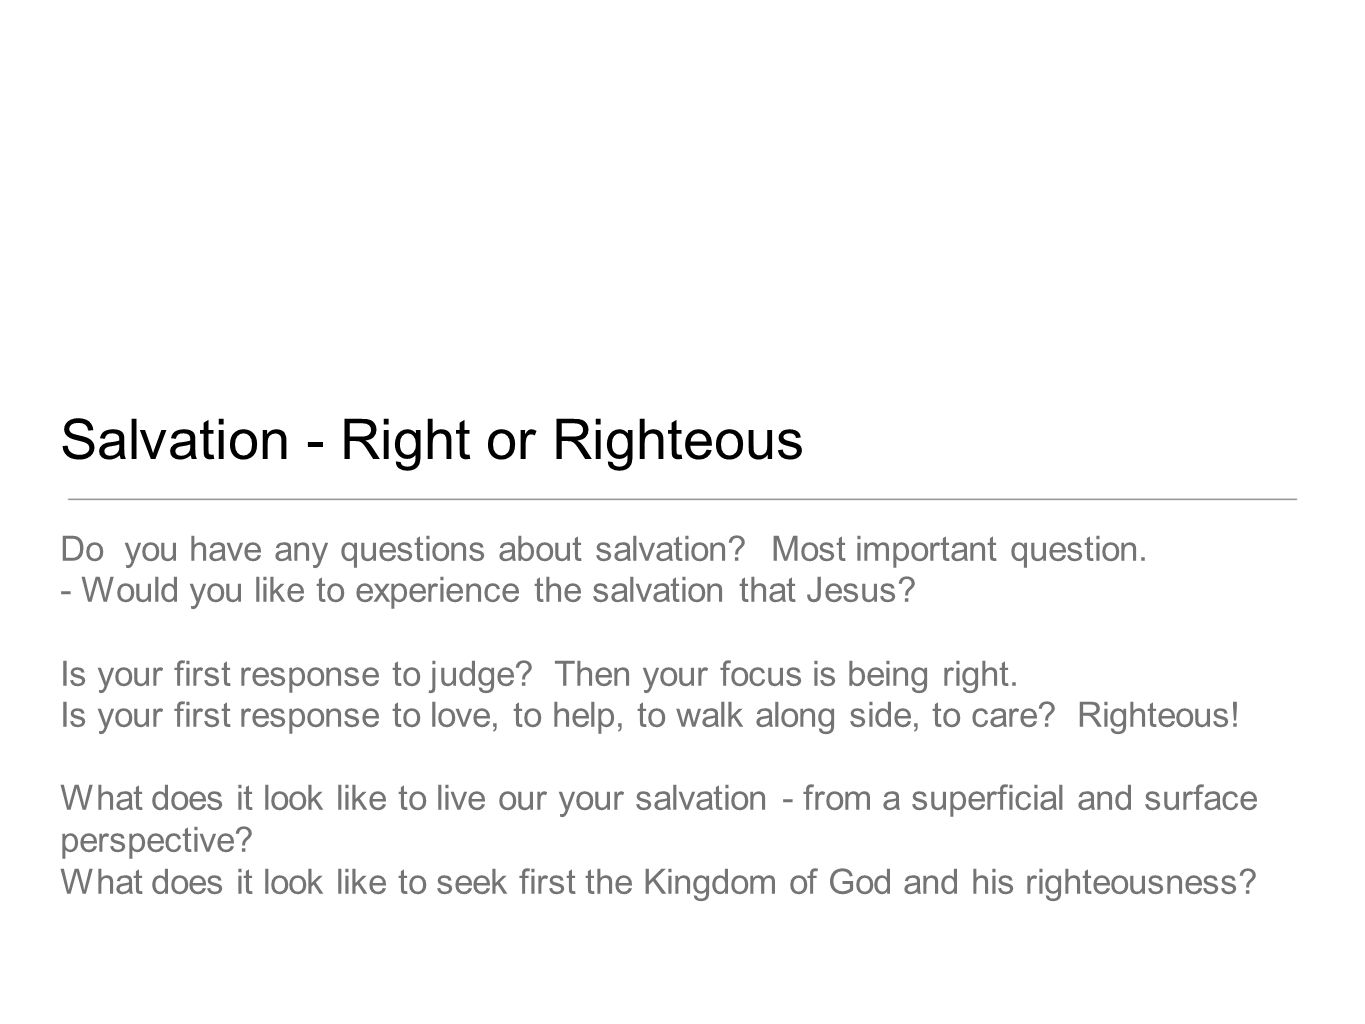 Salvation - Right or Righteous